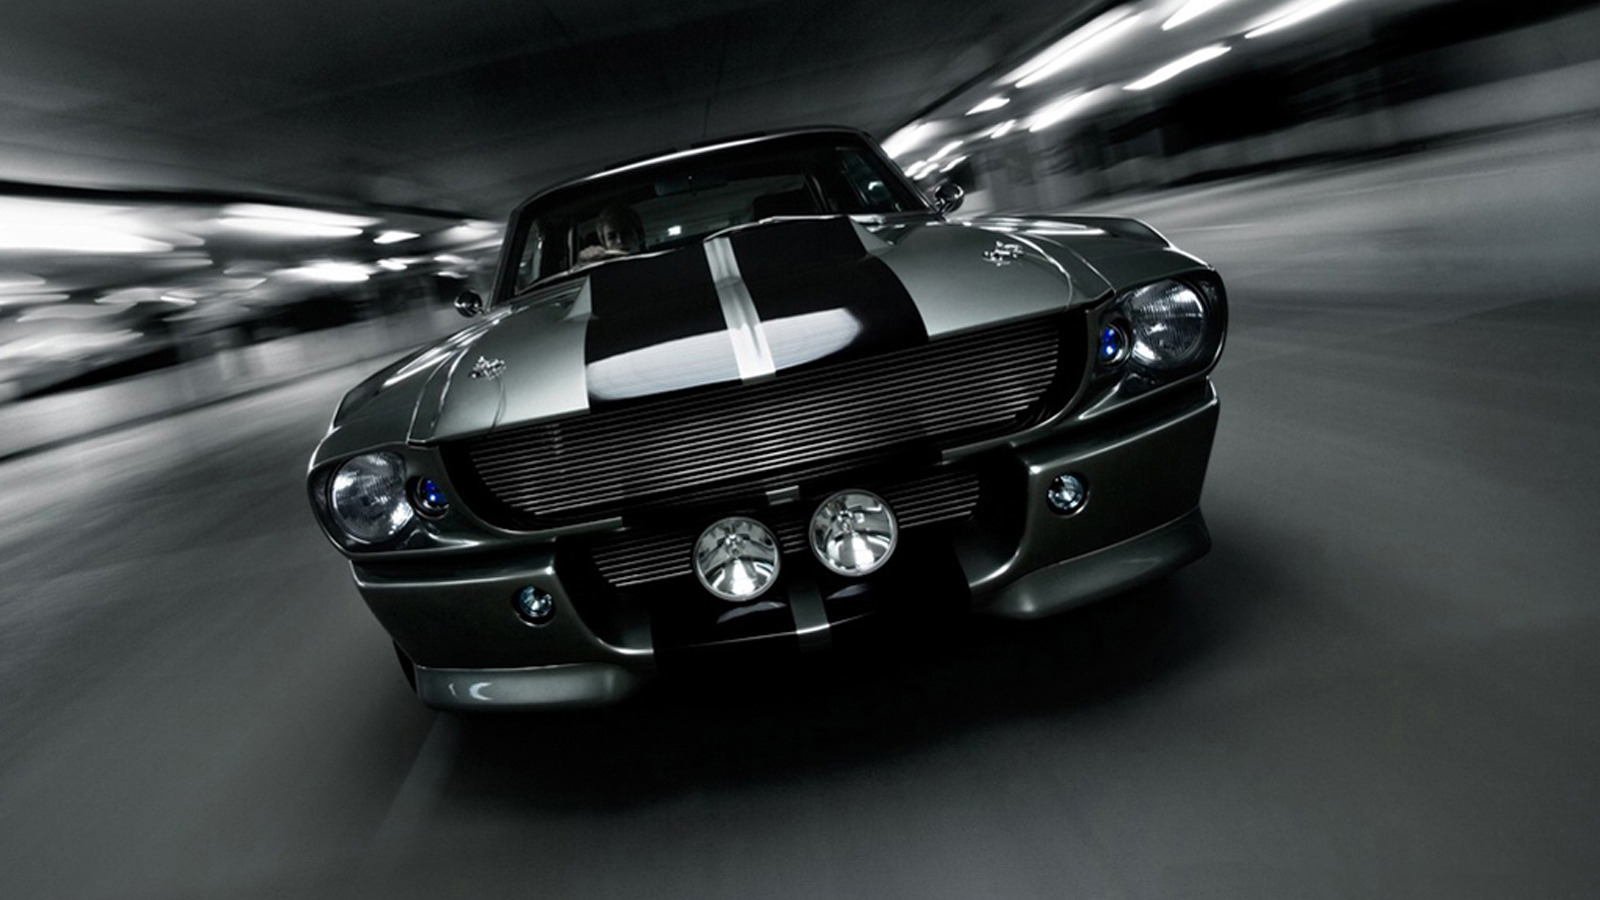 25 2015 Ford Mustang GT 500 Eleanor HD Wallpaper Cool Wallpapers Pict 1600x900